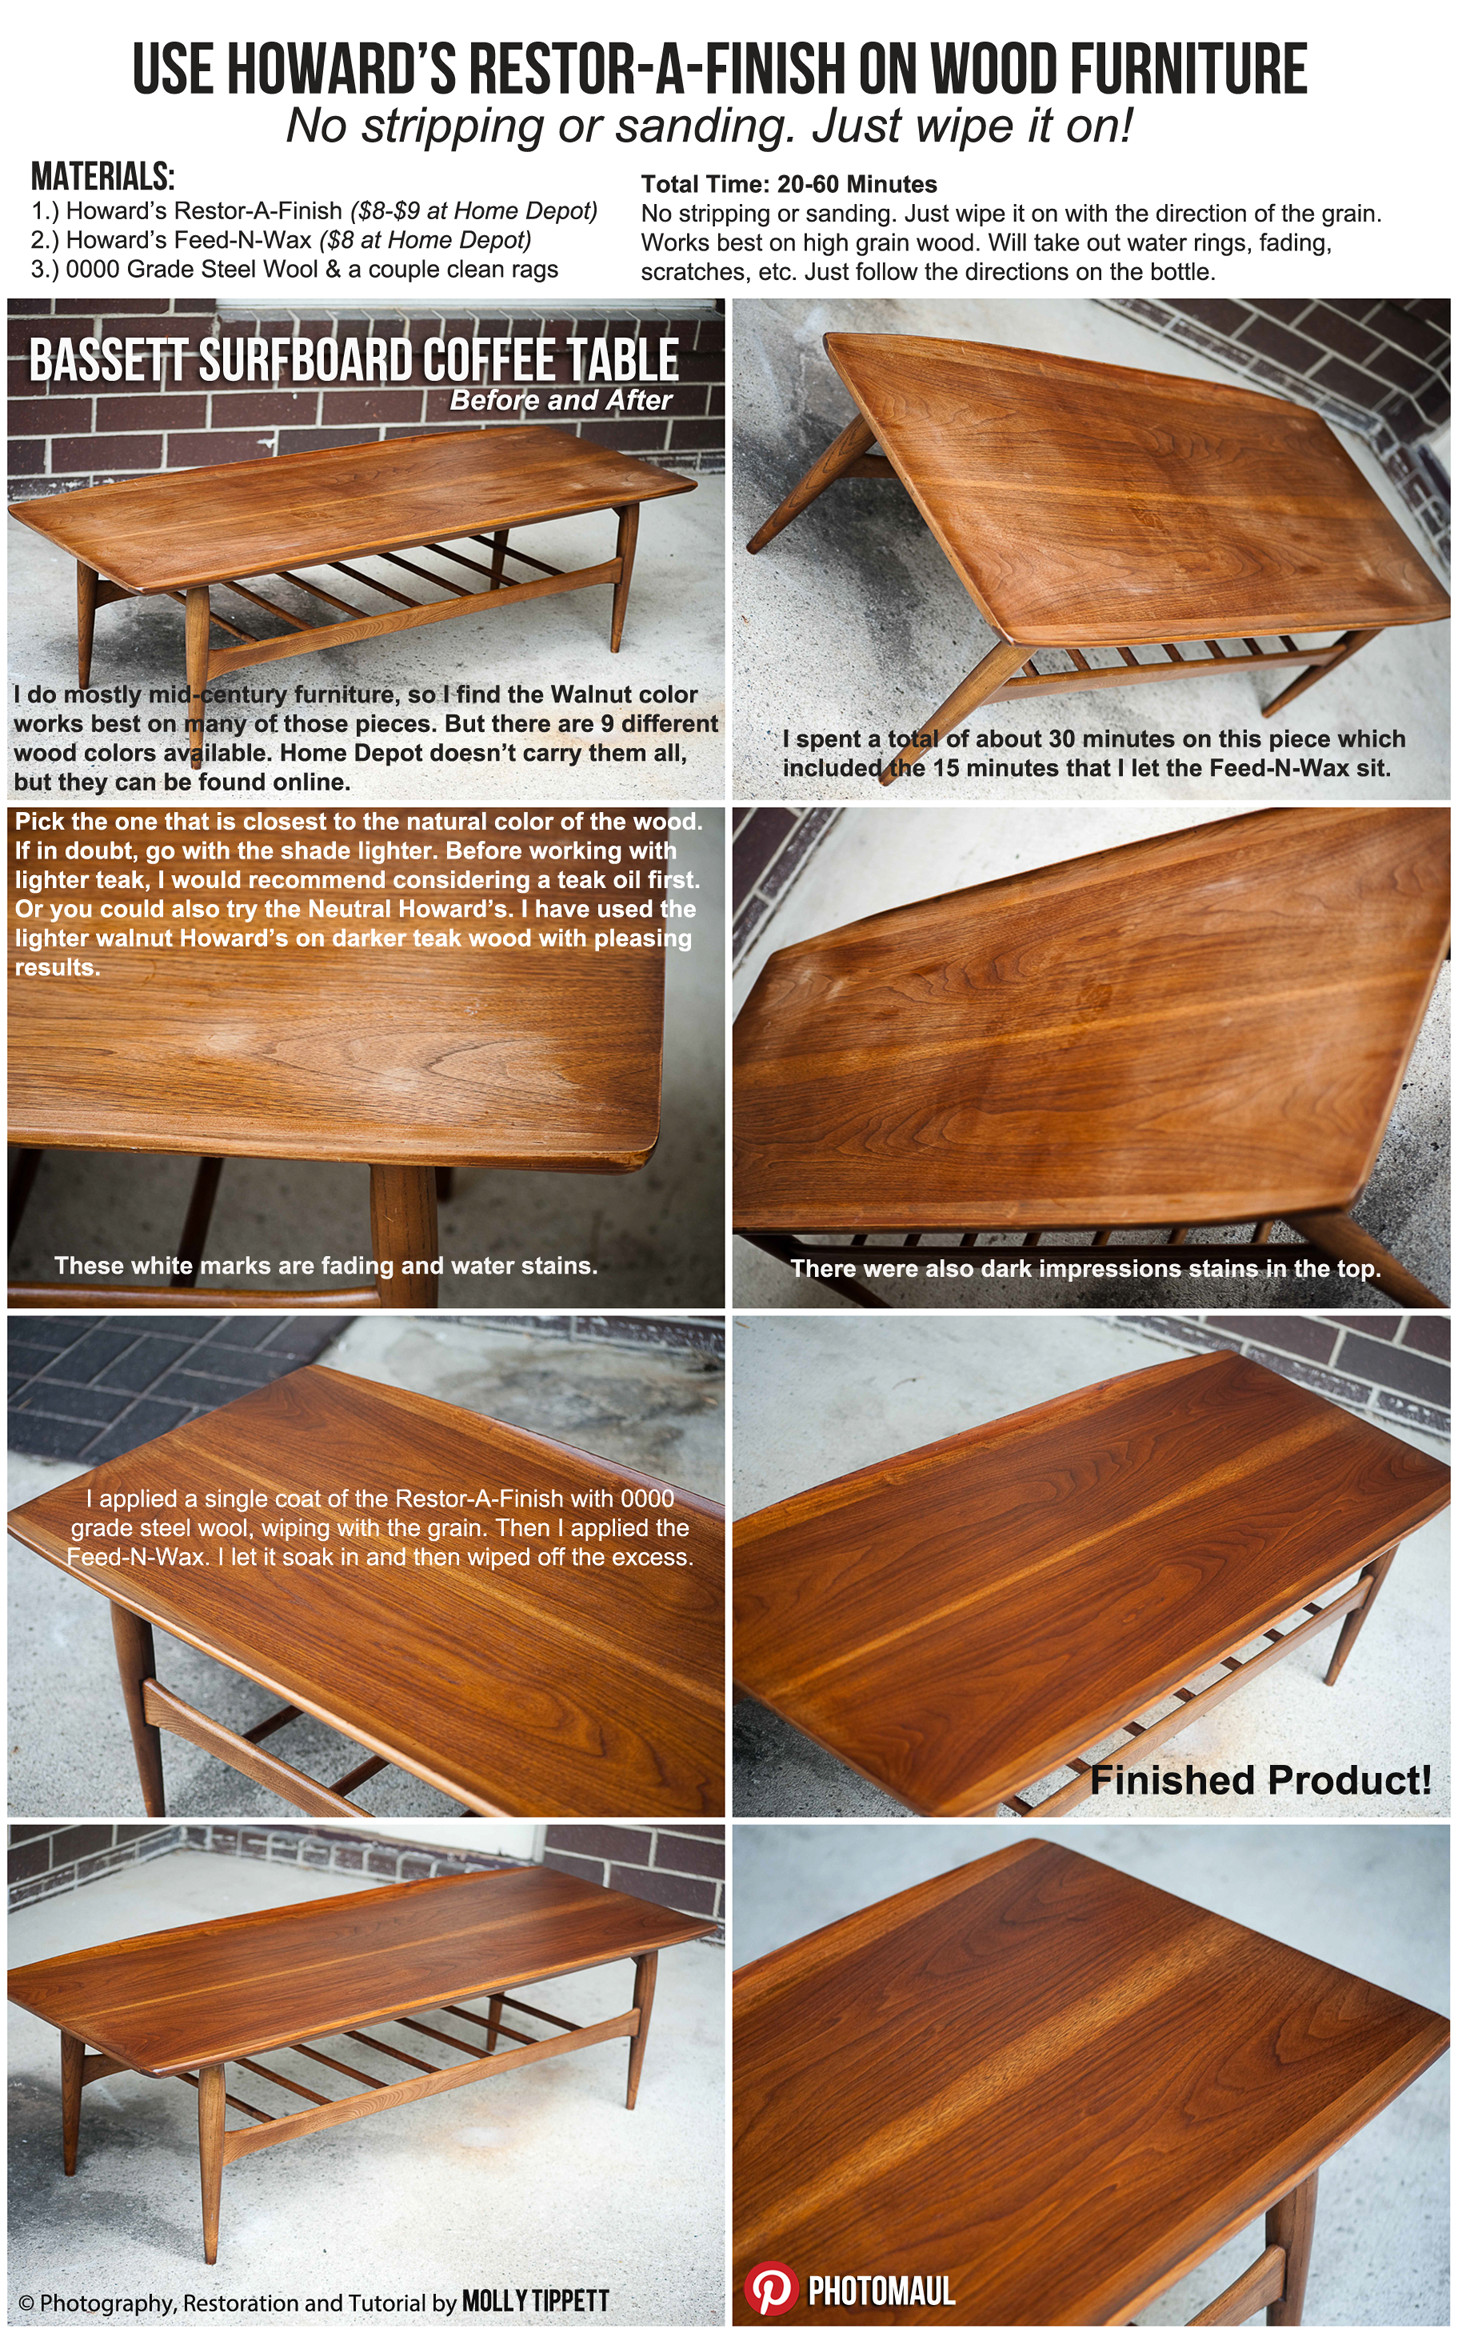 cost to refinish hardwood floors seattle of diy restore wood furniture fast cheap and easy wood furniture pertaining to fast cheap and easy wood furniture restoration diy mid century danish modern paint wood sanding refinish furniture restoration howards restor a